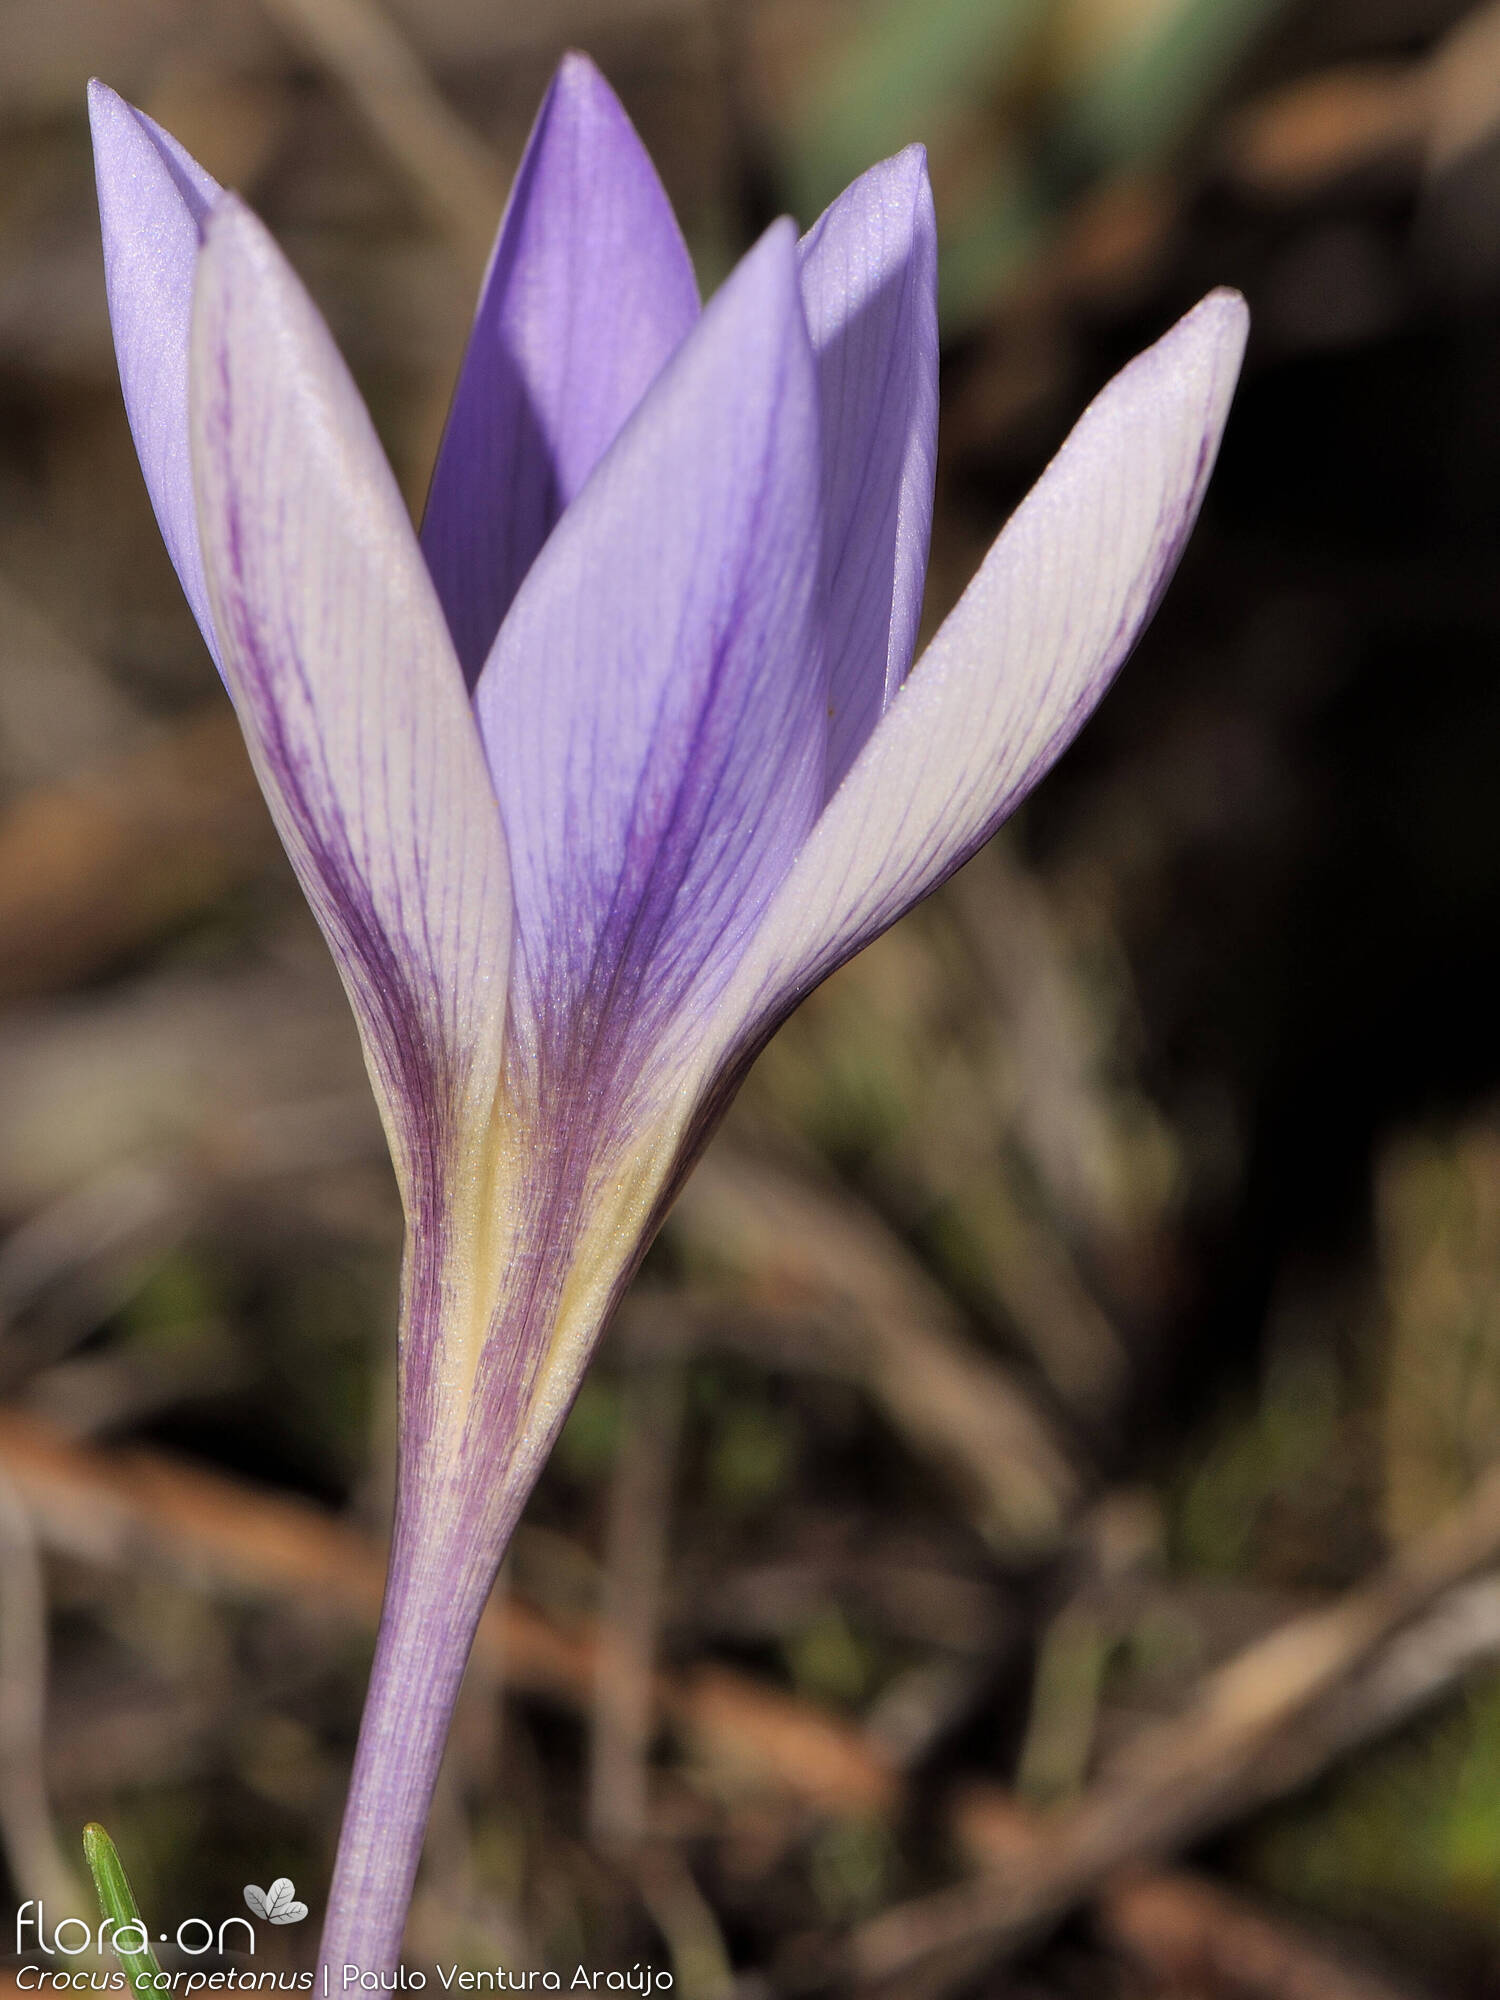 Crocus carpetanus - Flor (close-up) | Paulo Ventura Araújo; CC BY-NC 4.0